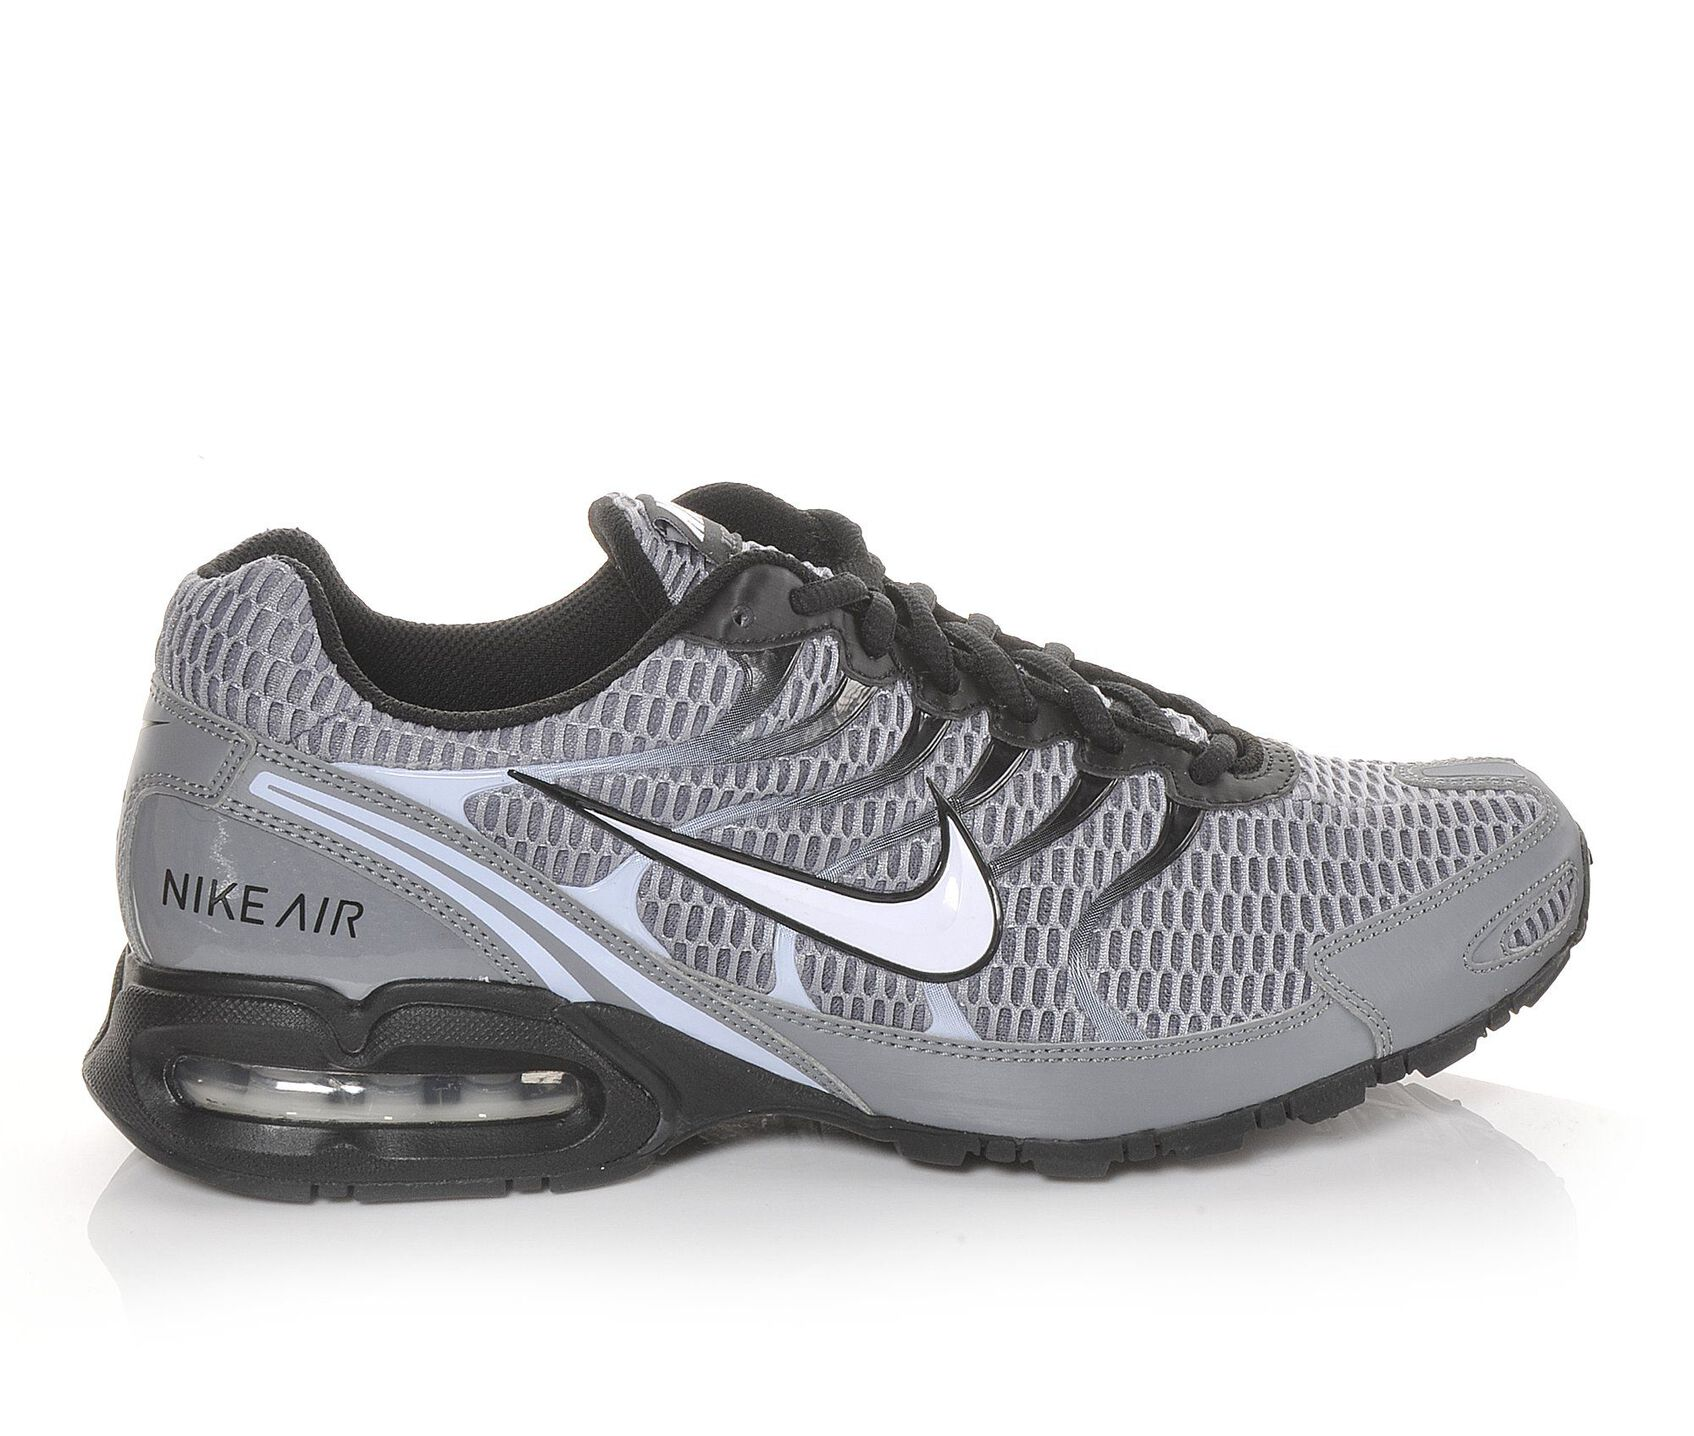 59de9051be6e Men s Nike Air Max Torch 4 Running Shoes